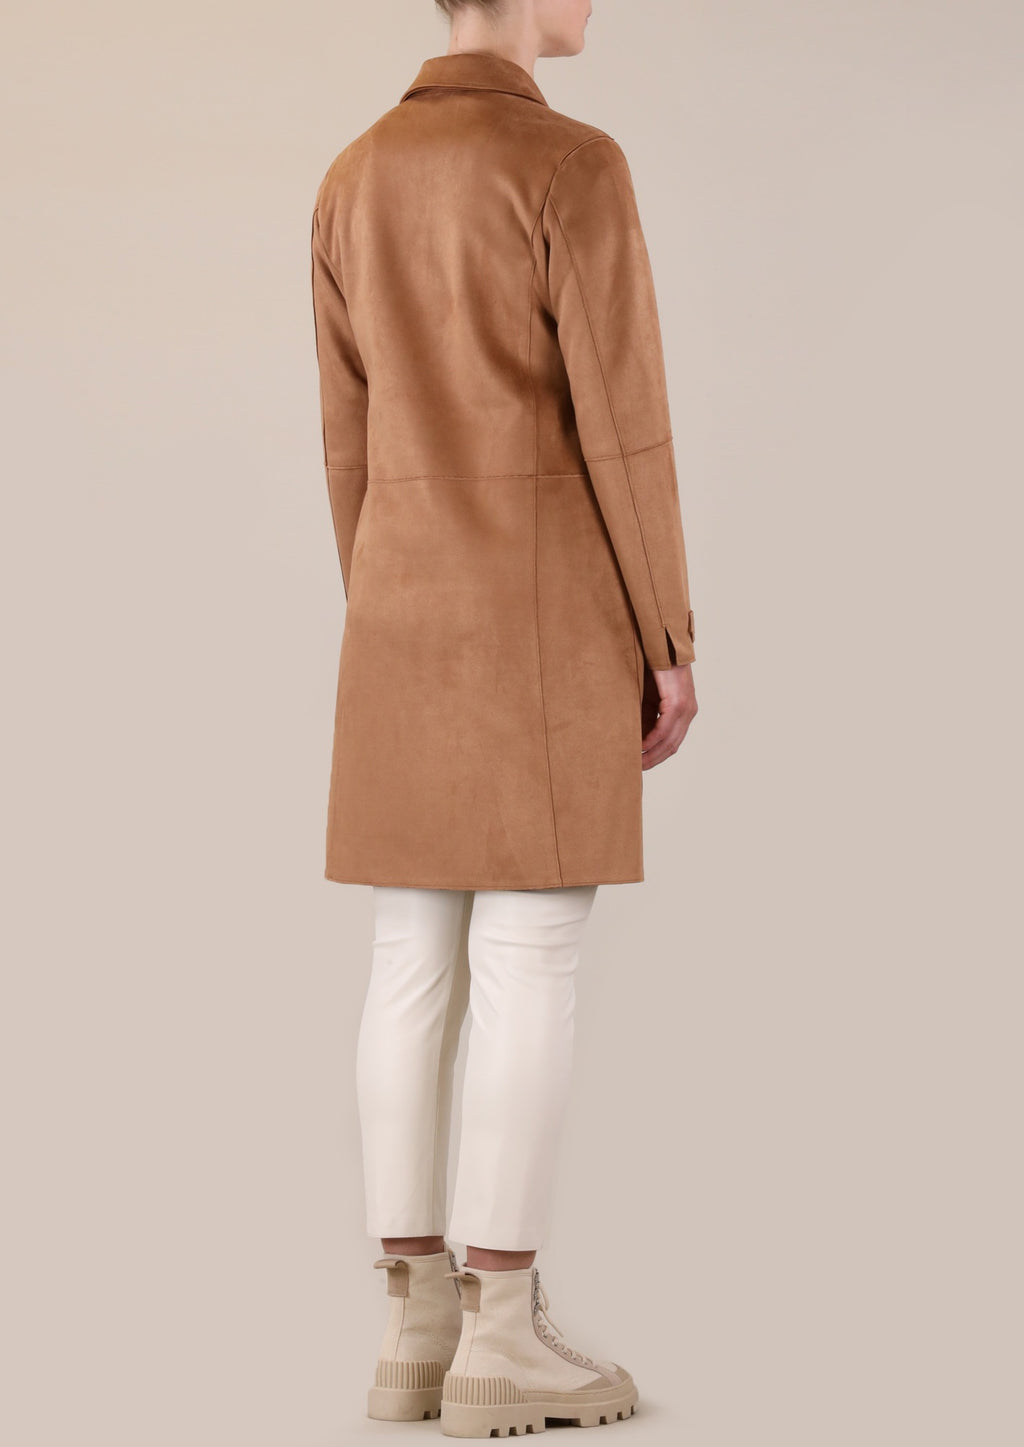 Rino & Pelle Babice Faux Suede Coat - Toasted Nut